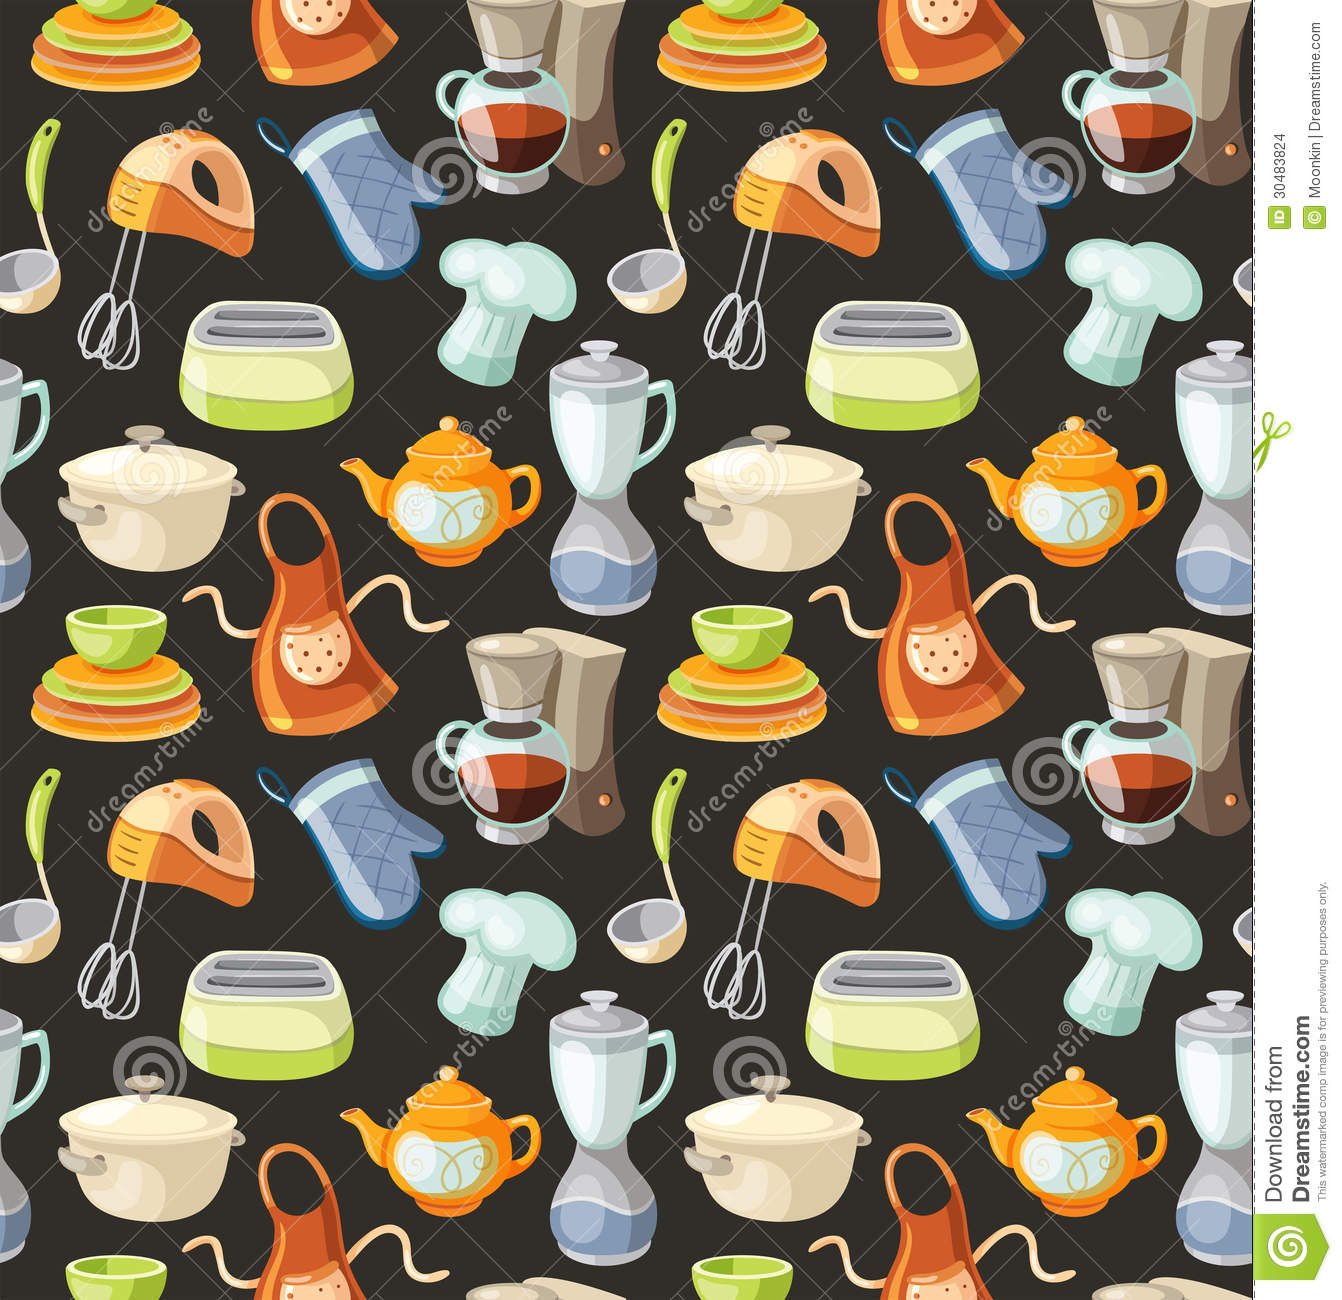 Seamless Pattern With Kitchen Tools And Cooking Icons